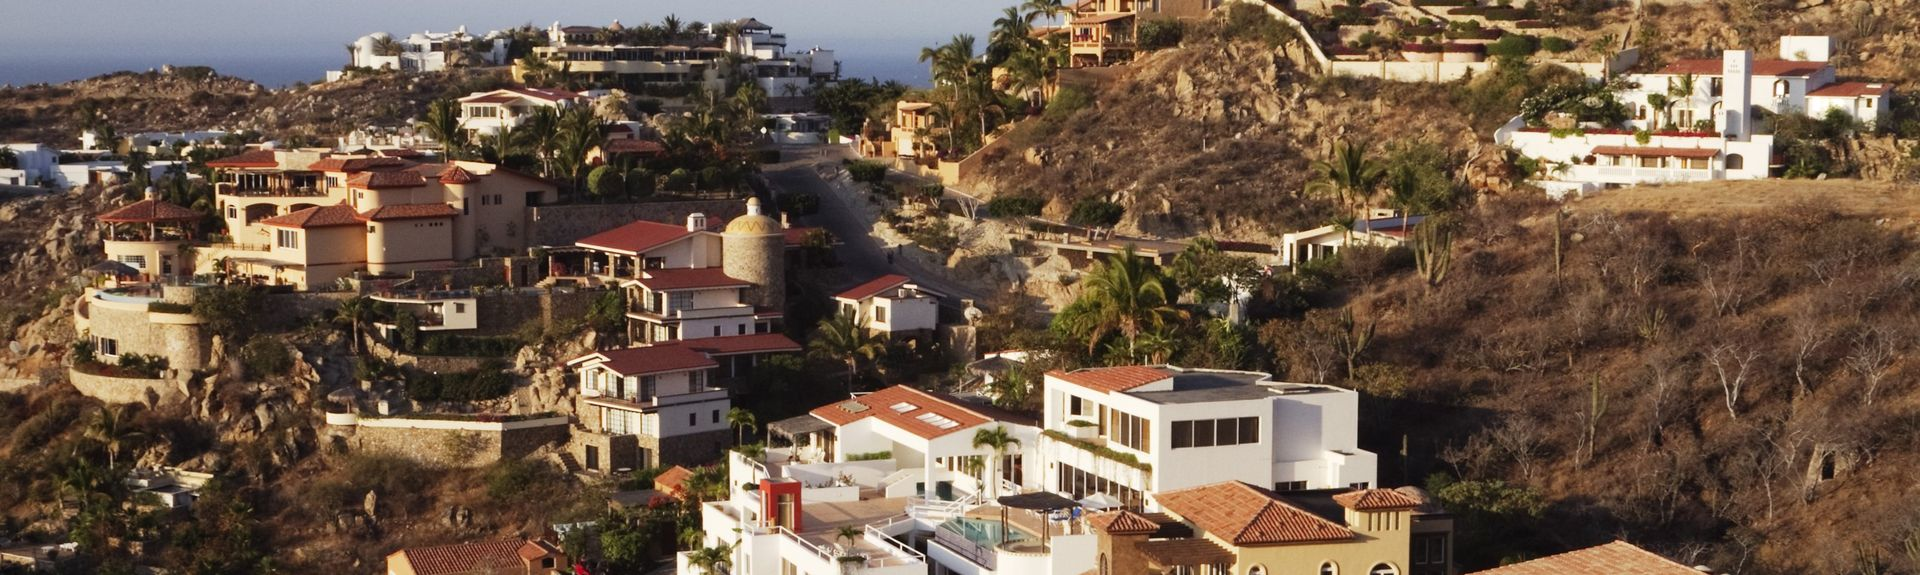 Pedregal, Cabo San Lucas, Basse-Californie du Sud, Mexique